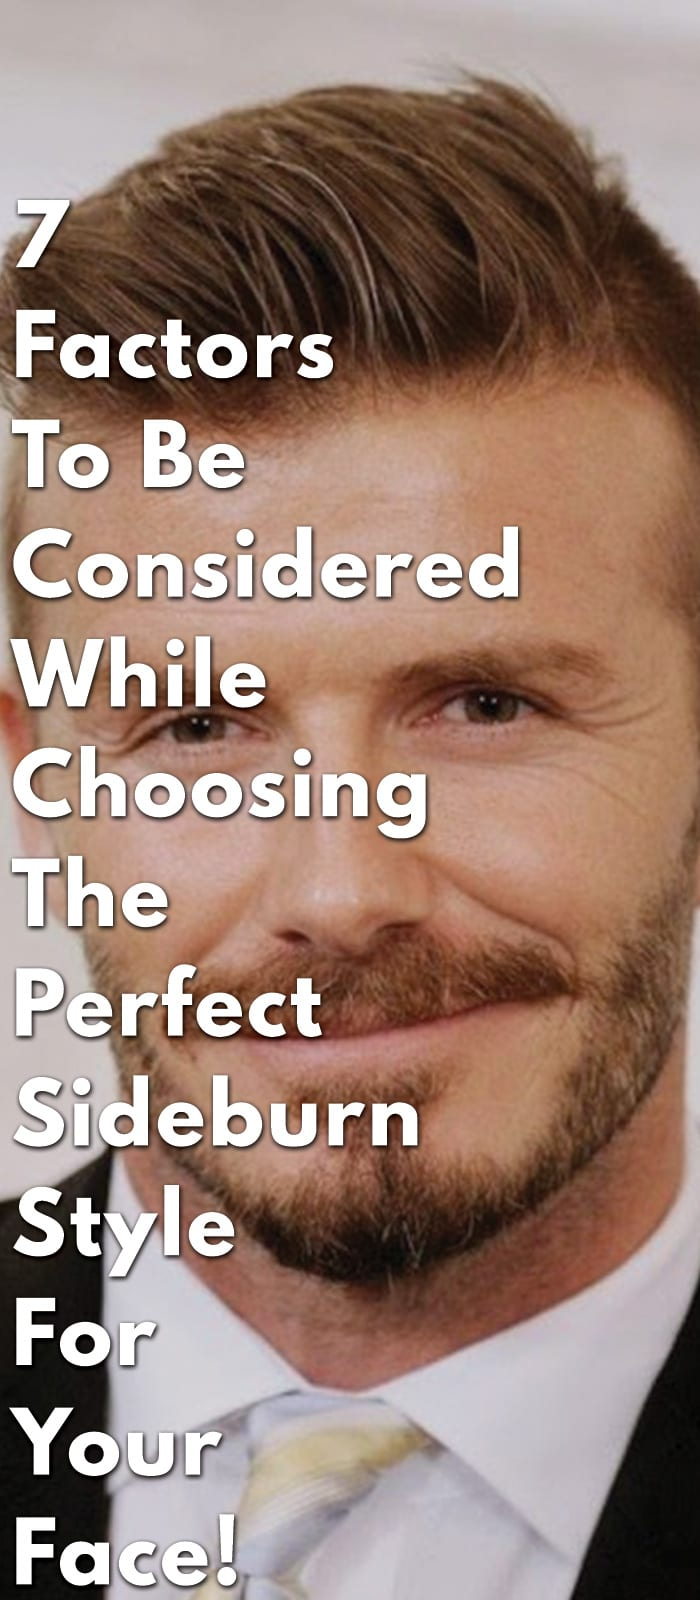 7-Factors-To-Be-Considered-While-Choosing-The-Perfect-Sideburn-Style-for-Your-Face!.